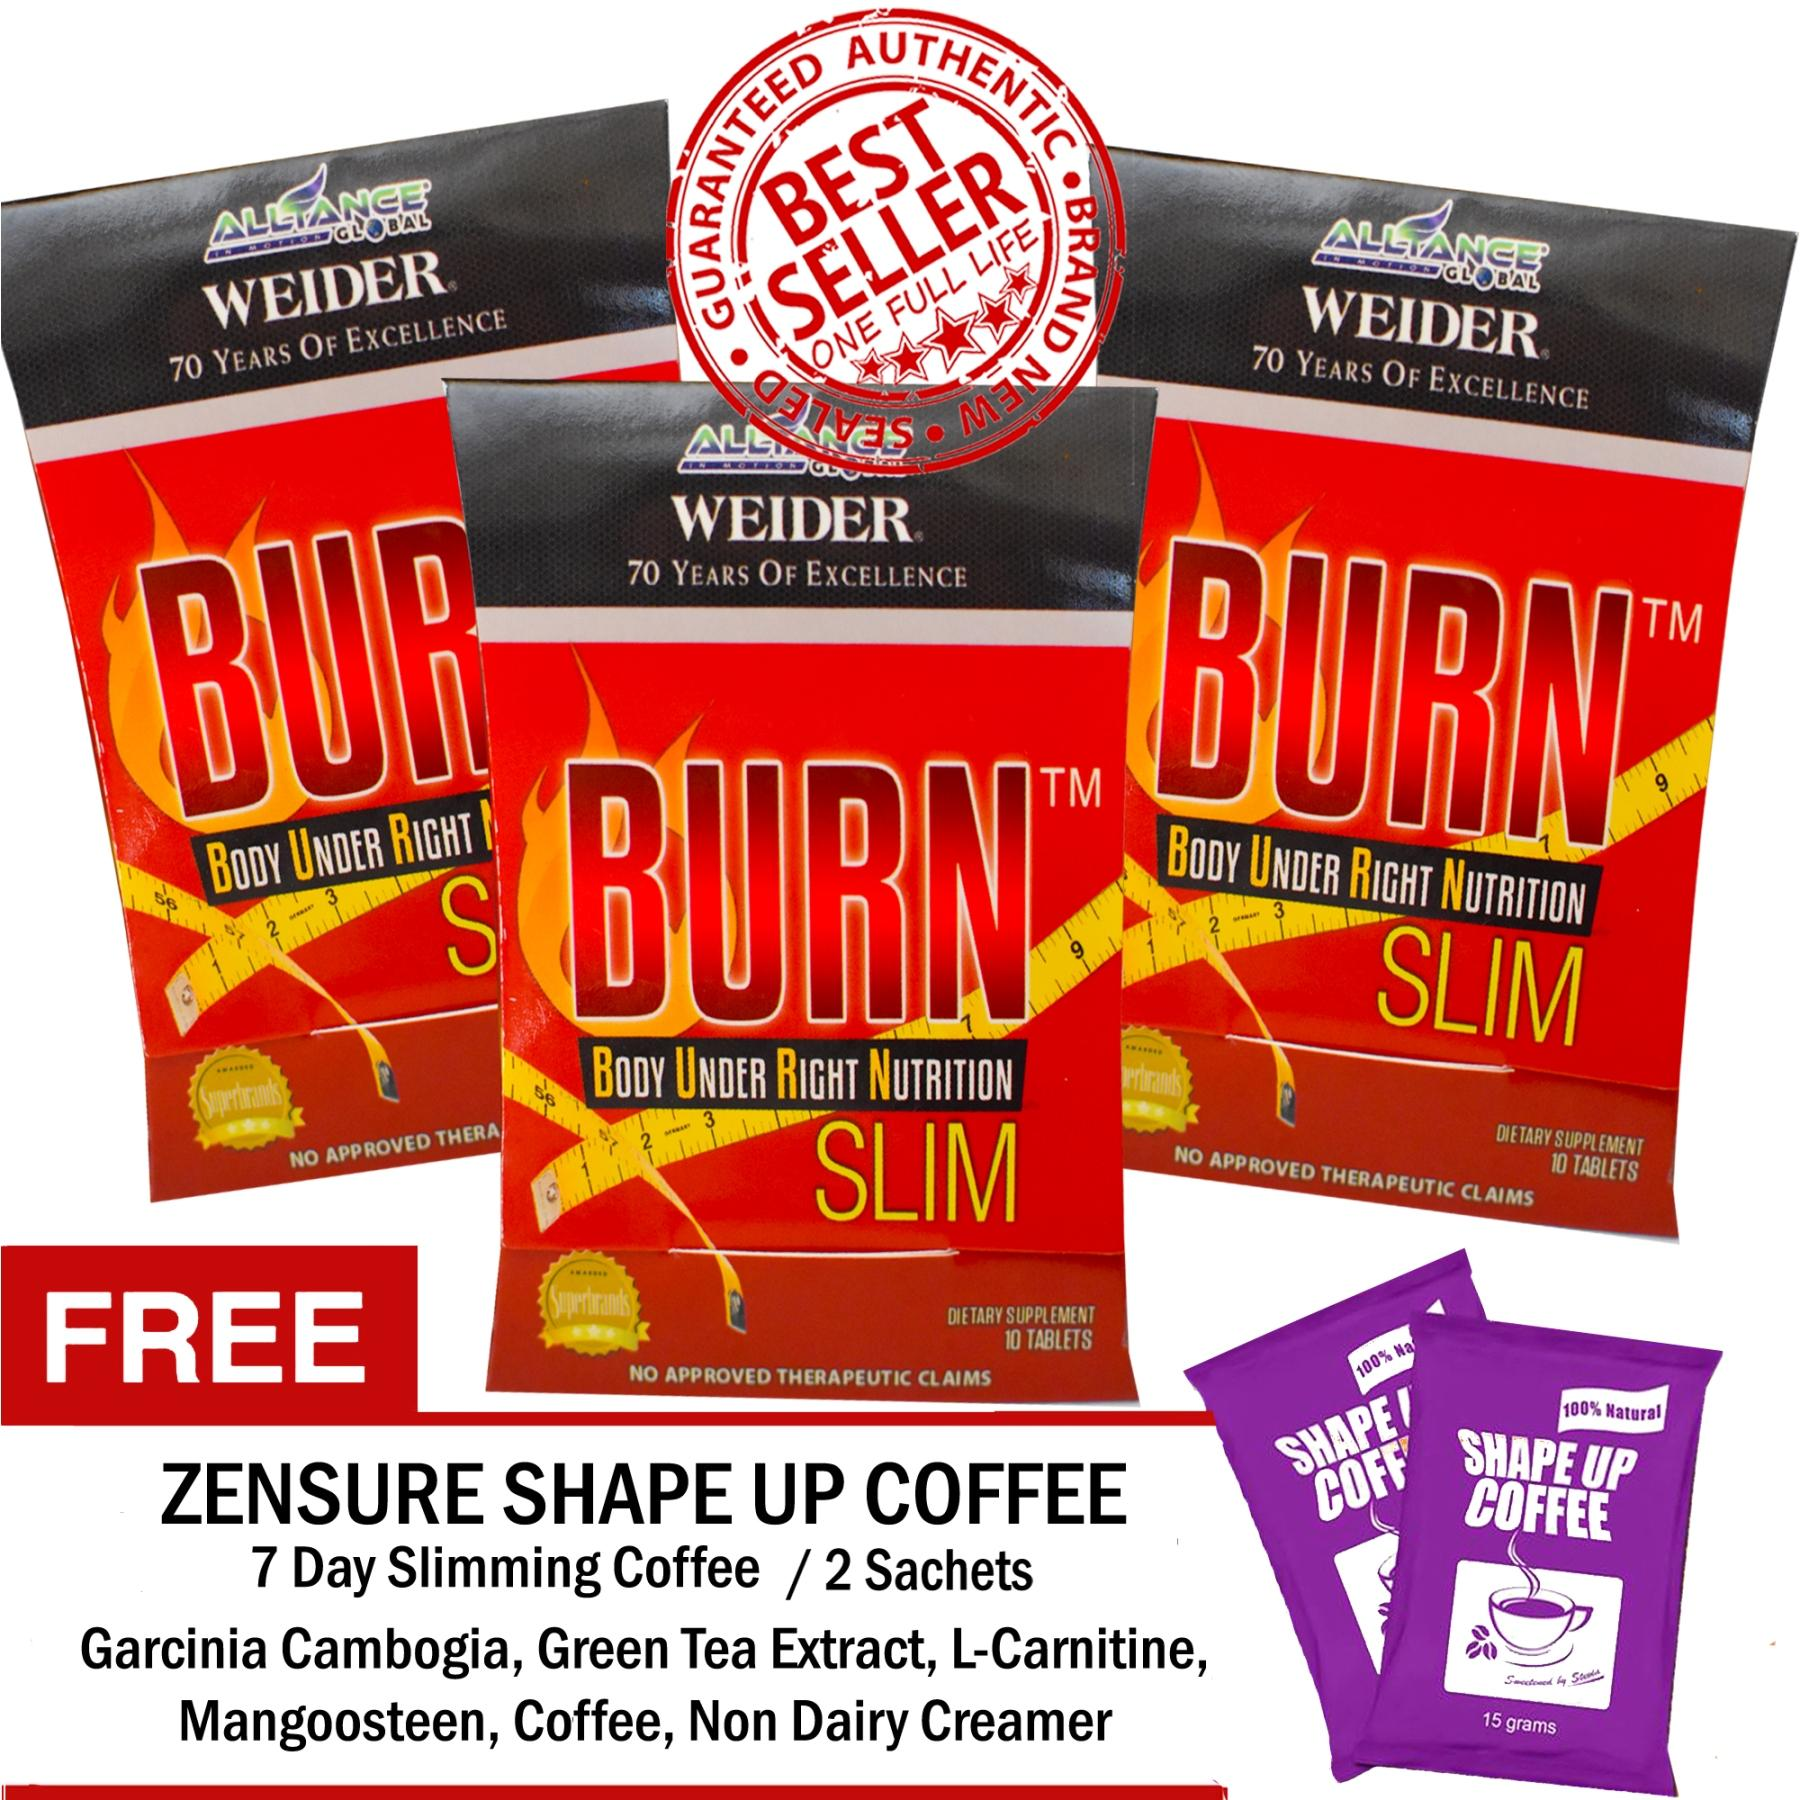 Aim Global Burn Slim 30 Tablets With Free 2 Sachets Zensure Shape Up 7 Days Slimming